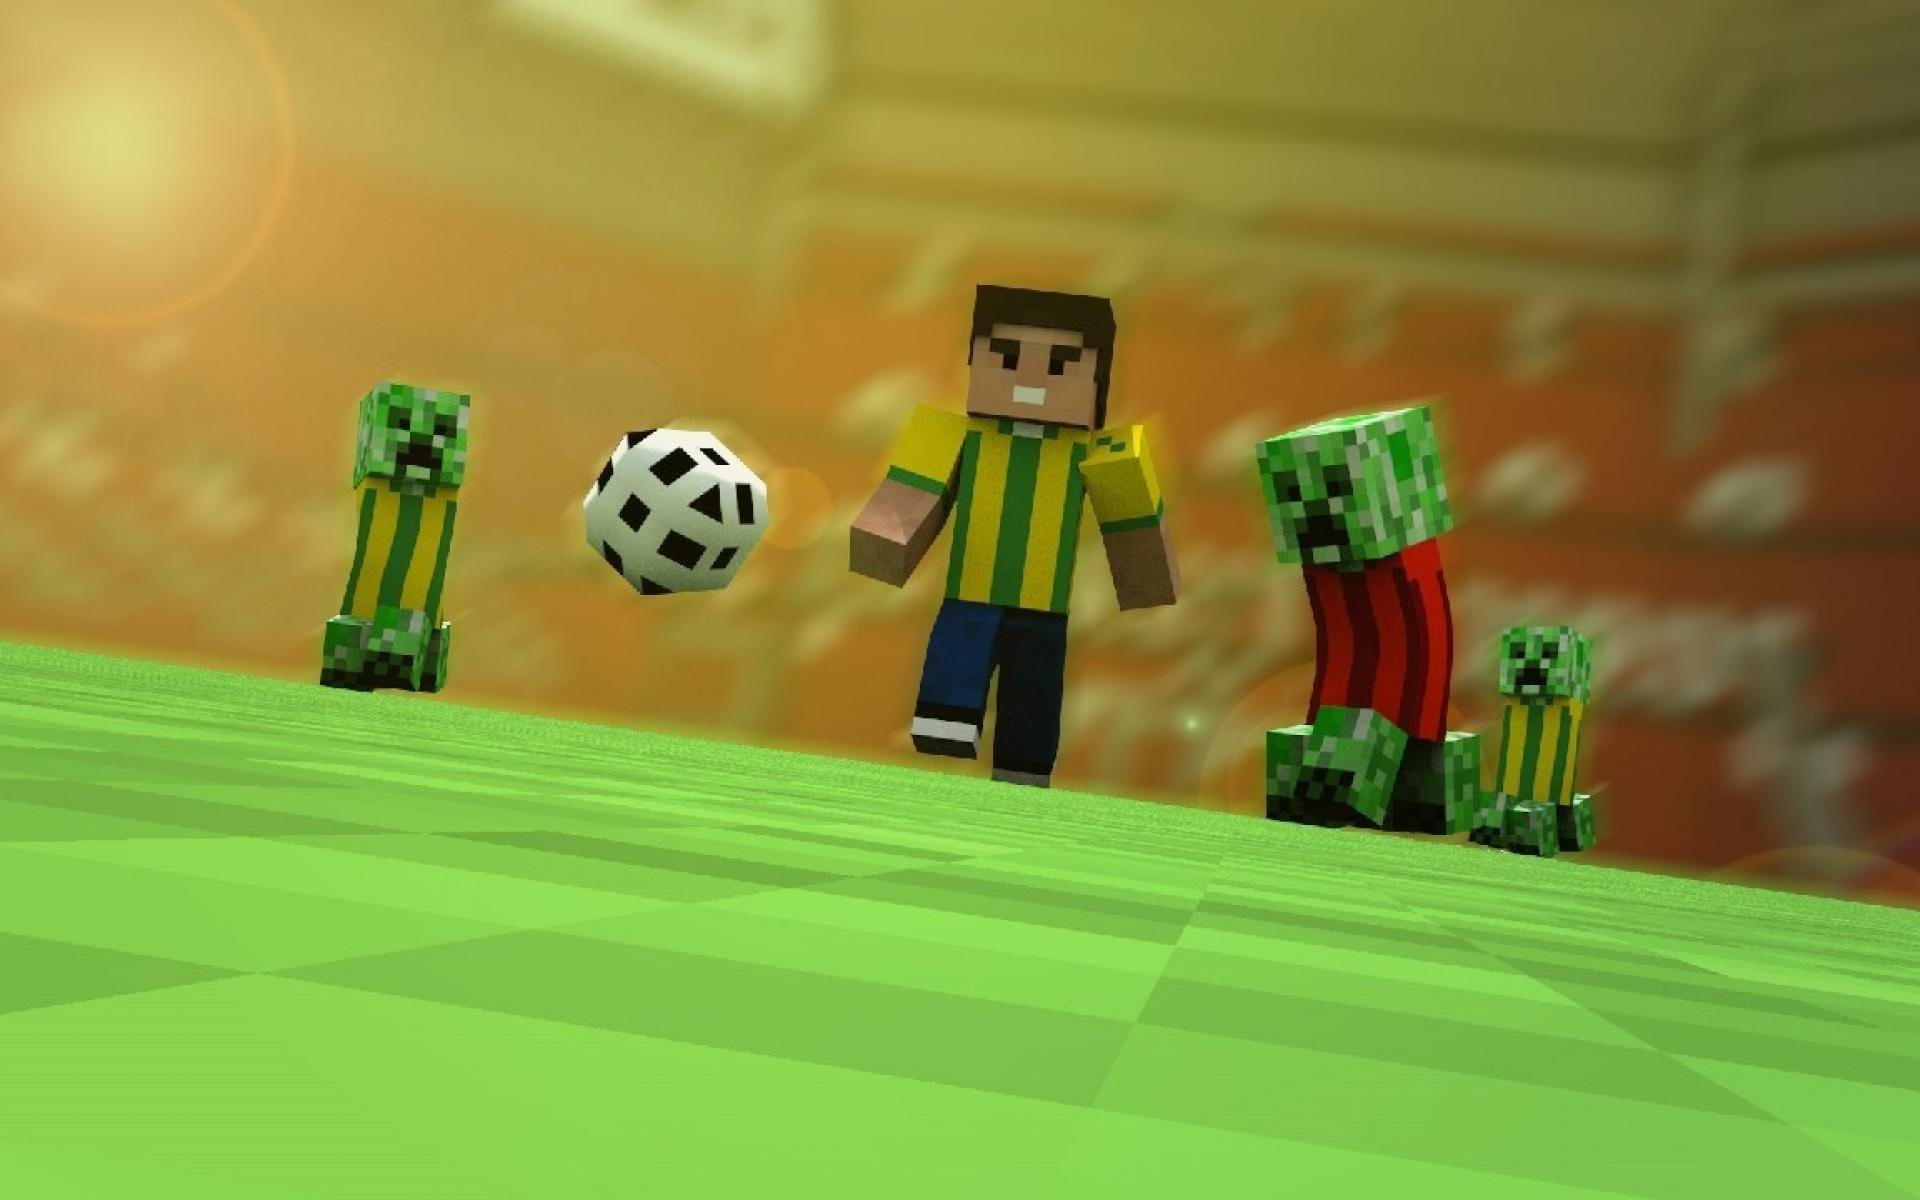 1920x1080 423551 Minecraft Lb Photo Texture Hd Wallpaper Images Cubes Character